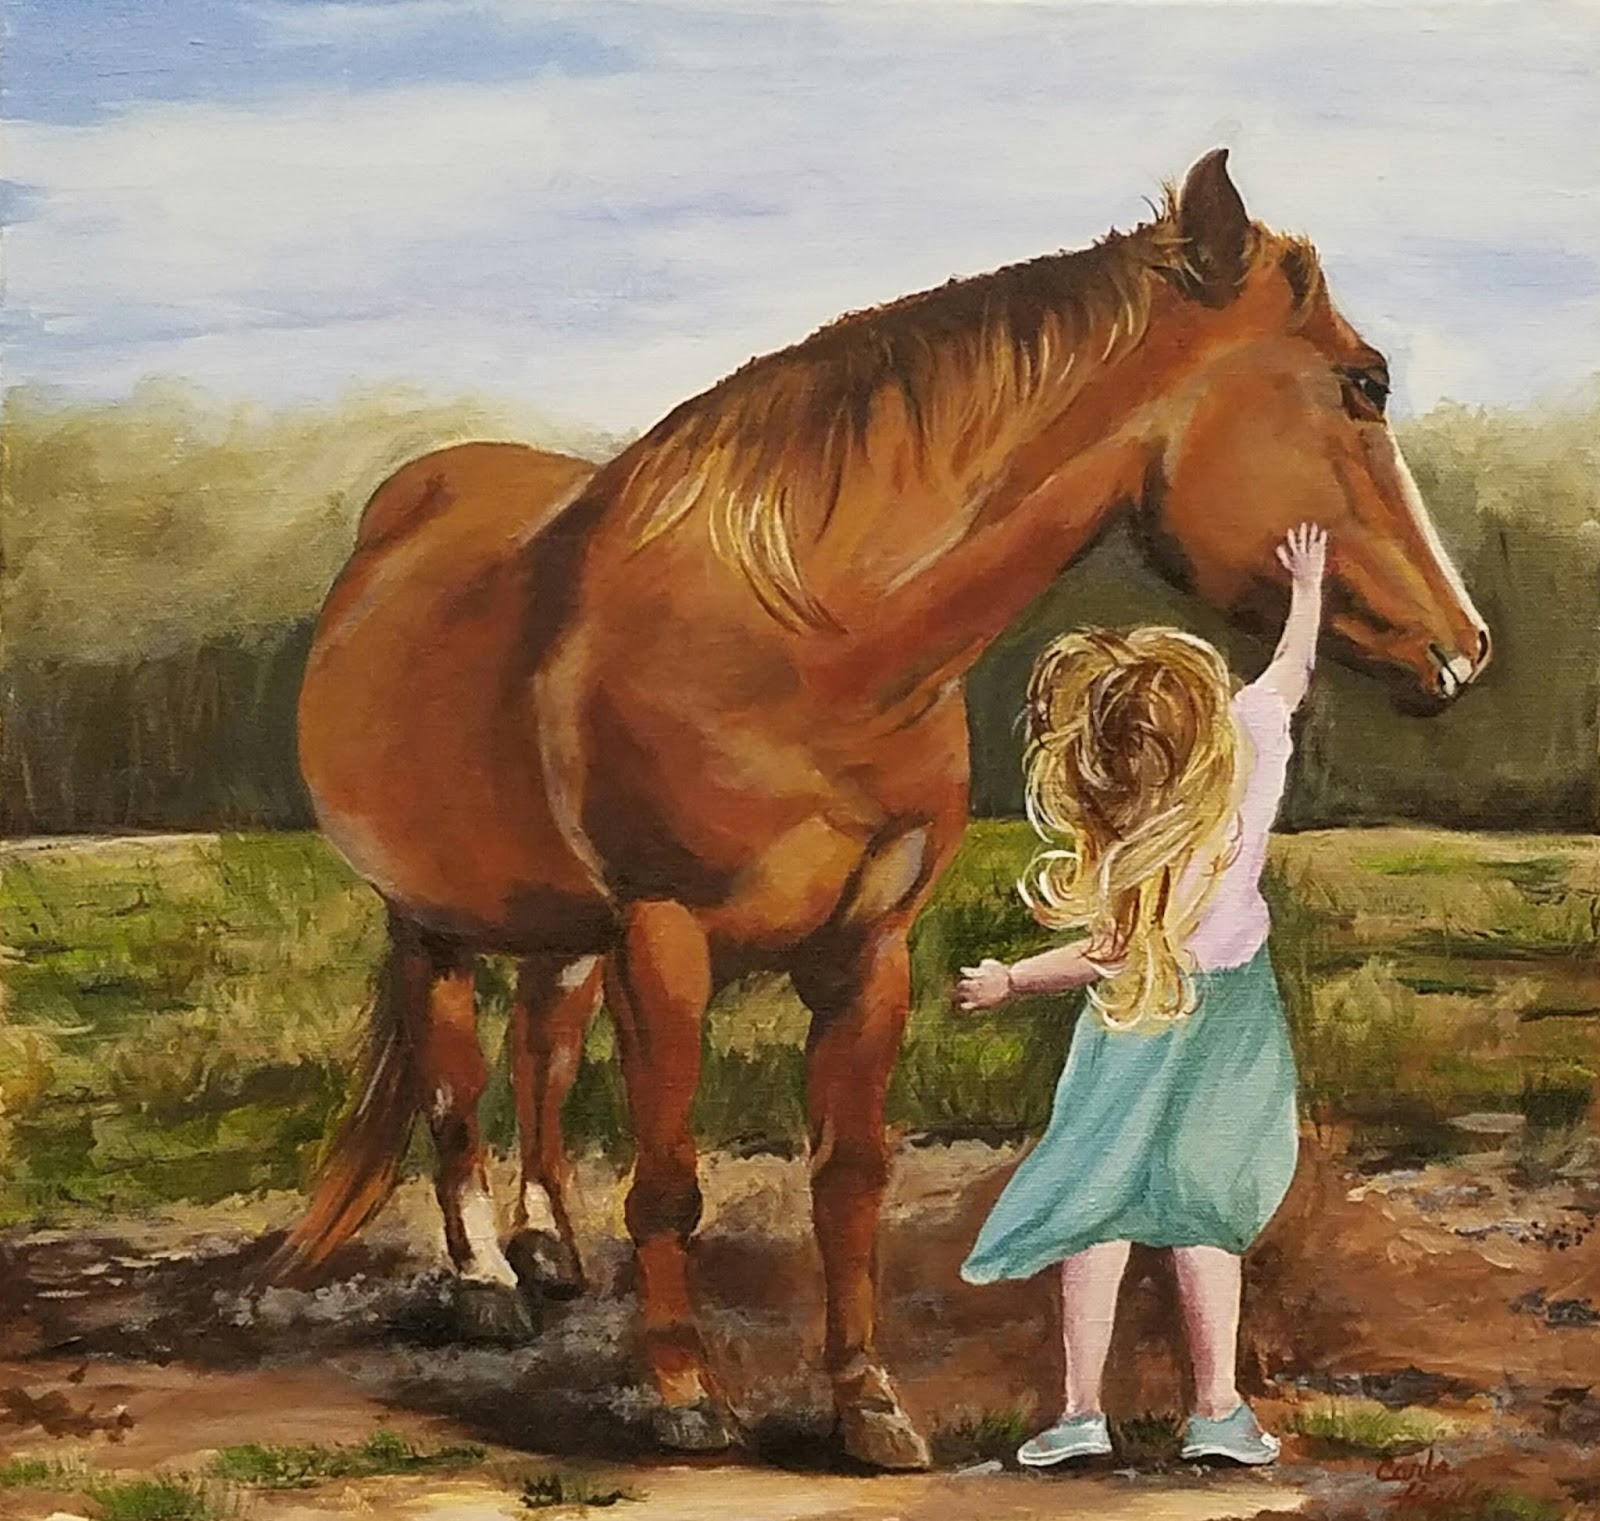 The name Cowboy is the horses name and the horse belongs to her other  #734324